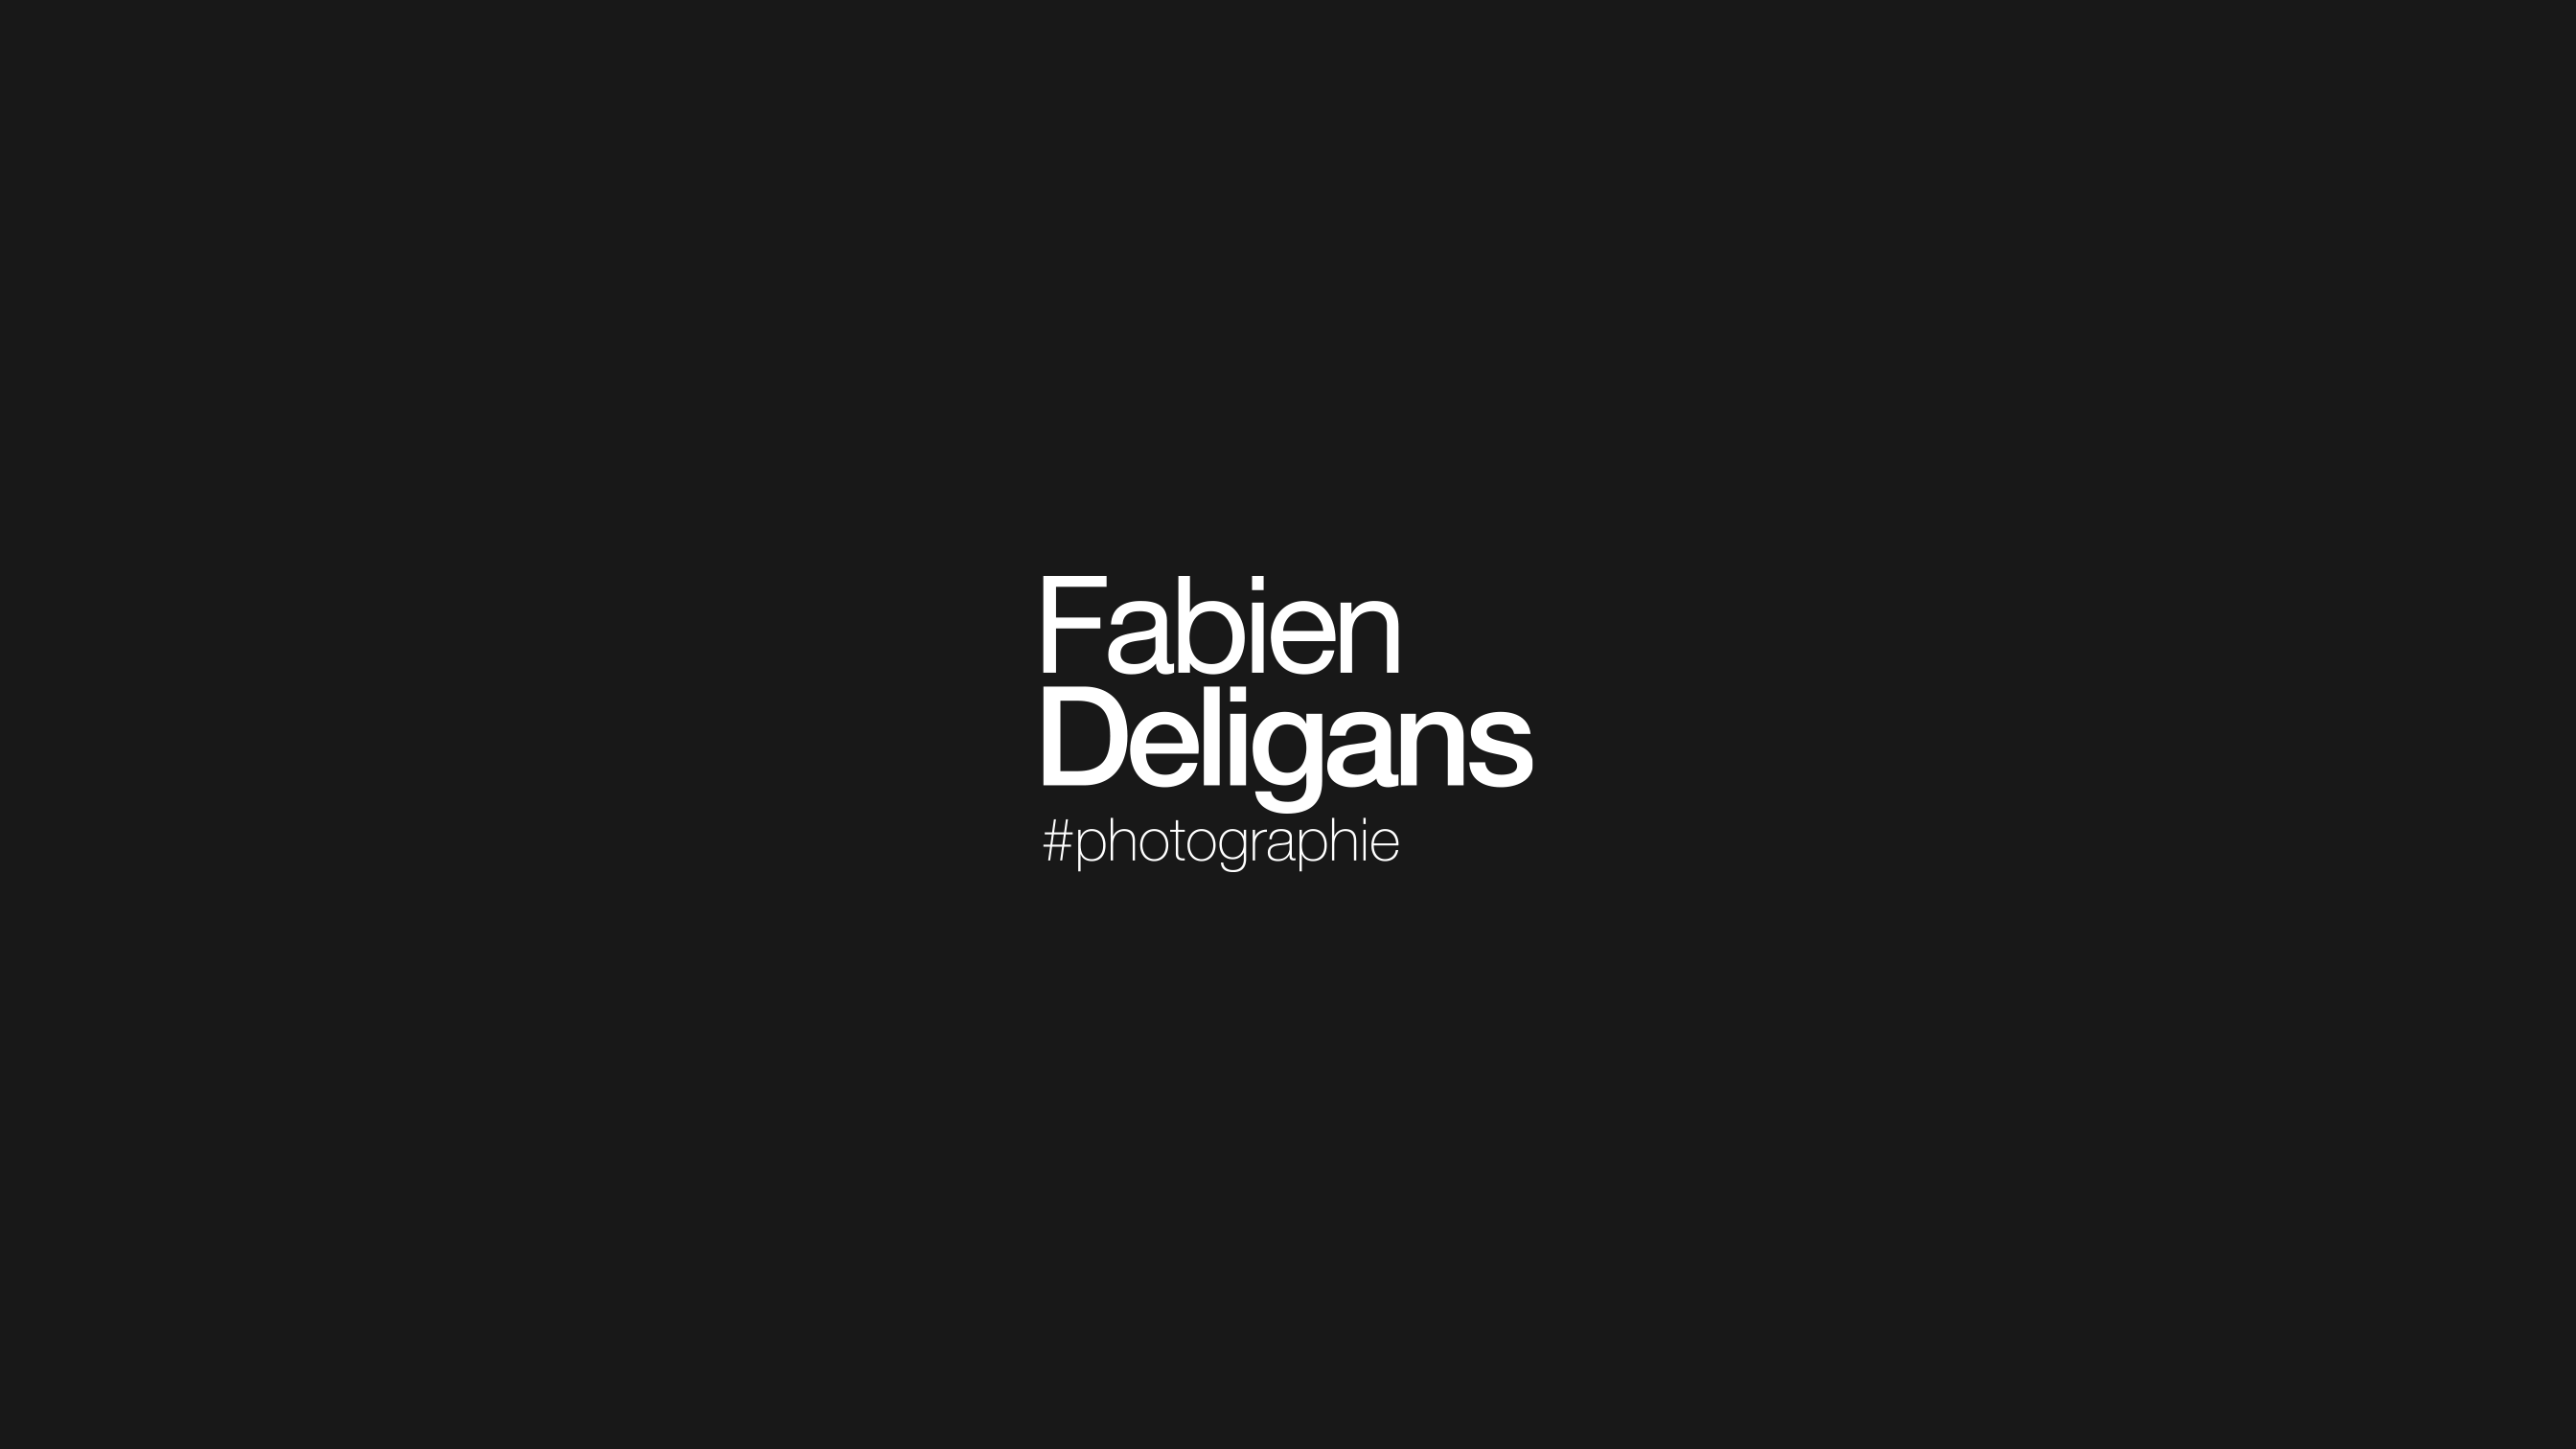 showcase-logotype-fabien-deligans